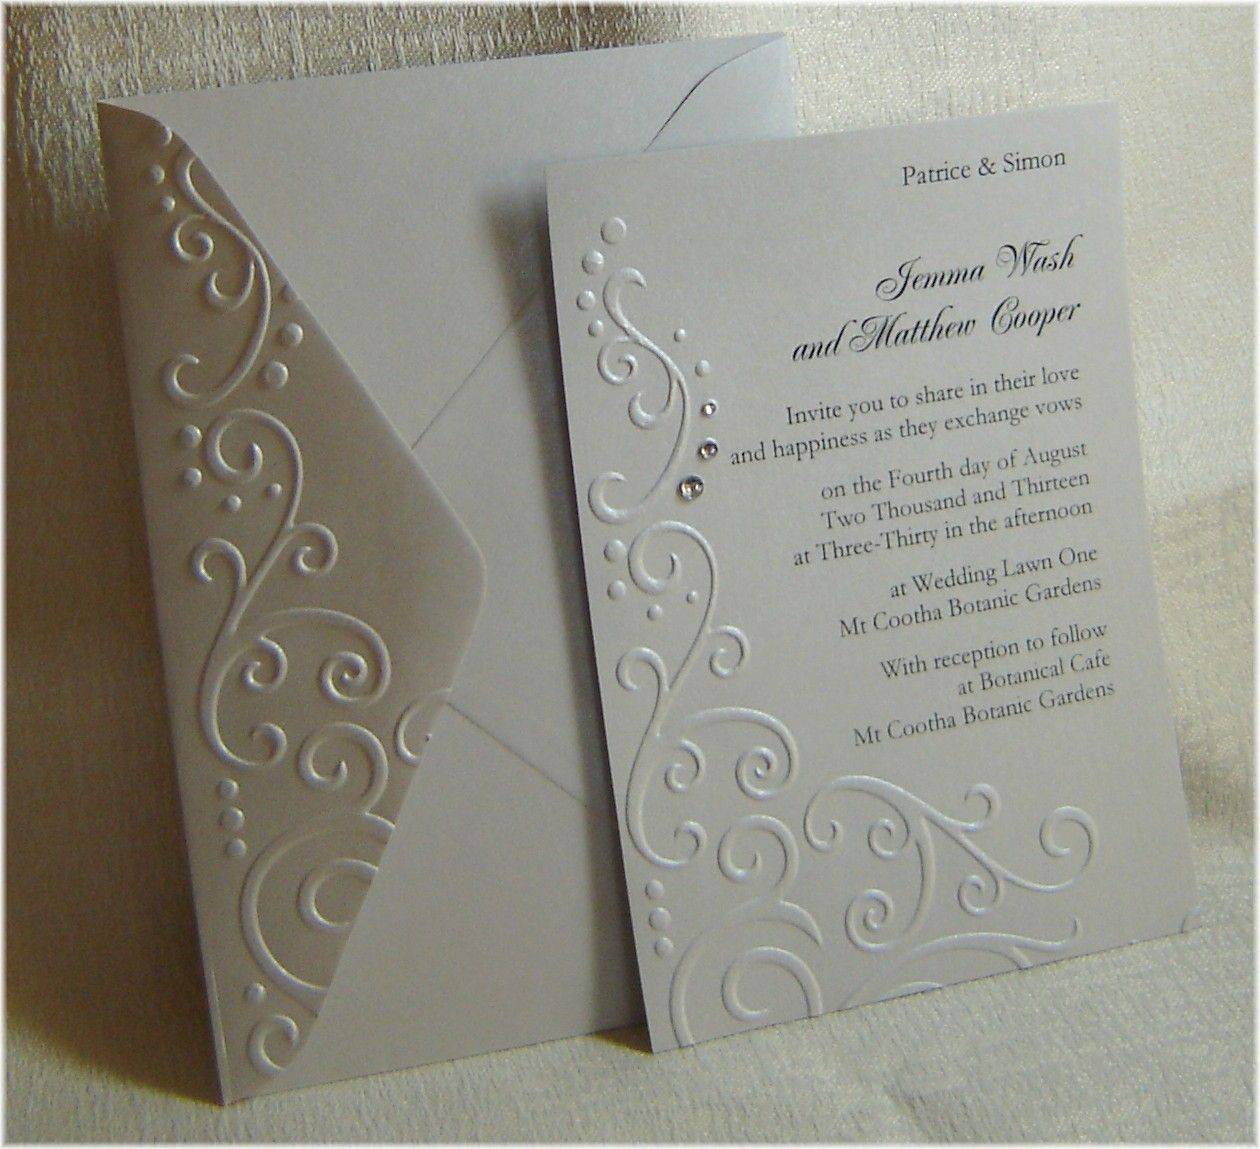 Embossed Wedding Invitations Invitations Pinterest – Embossed Invitation Cards